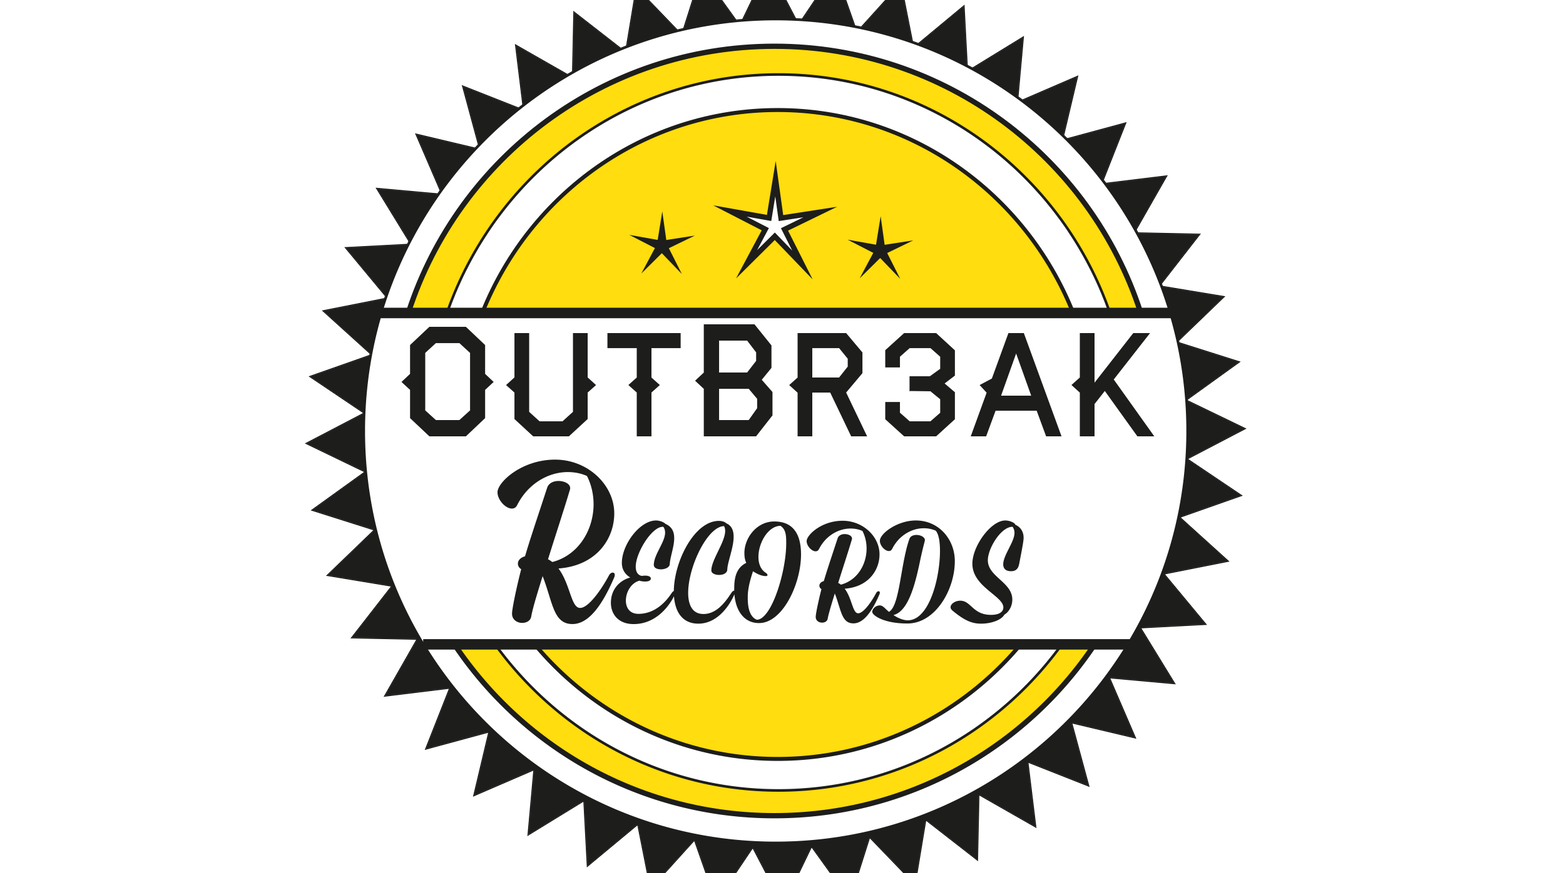 Outbreak Records is the Record label set up by the Music students of Croydon College School of Art.